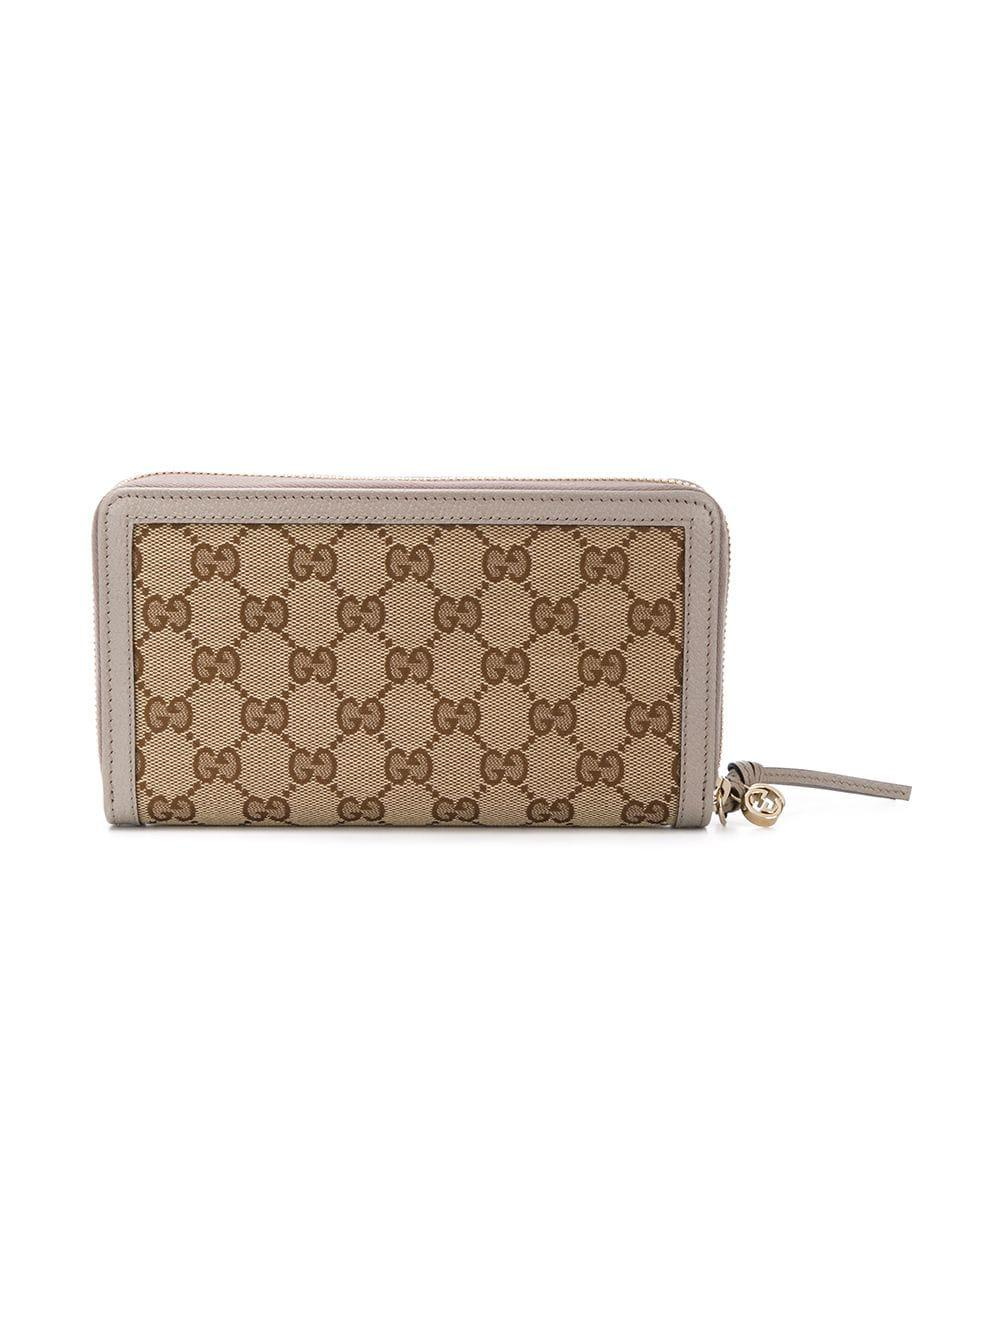 08445df42f70 Gucci GG Supreme Zip Around Wallet - Lyst